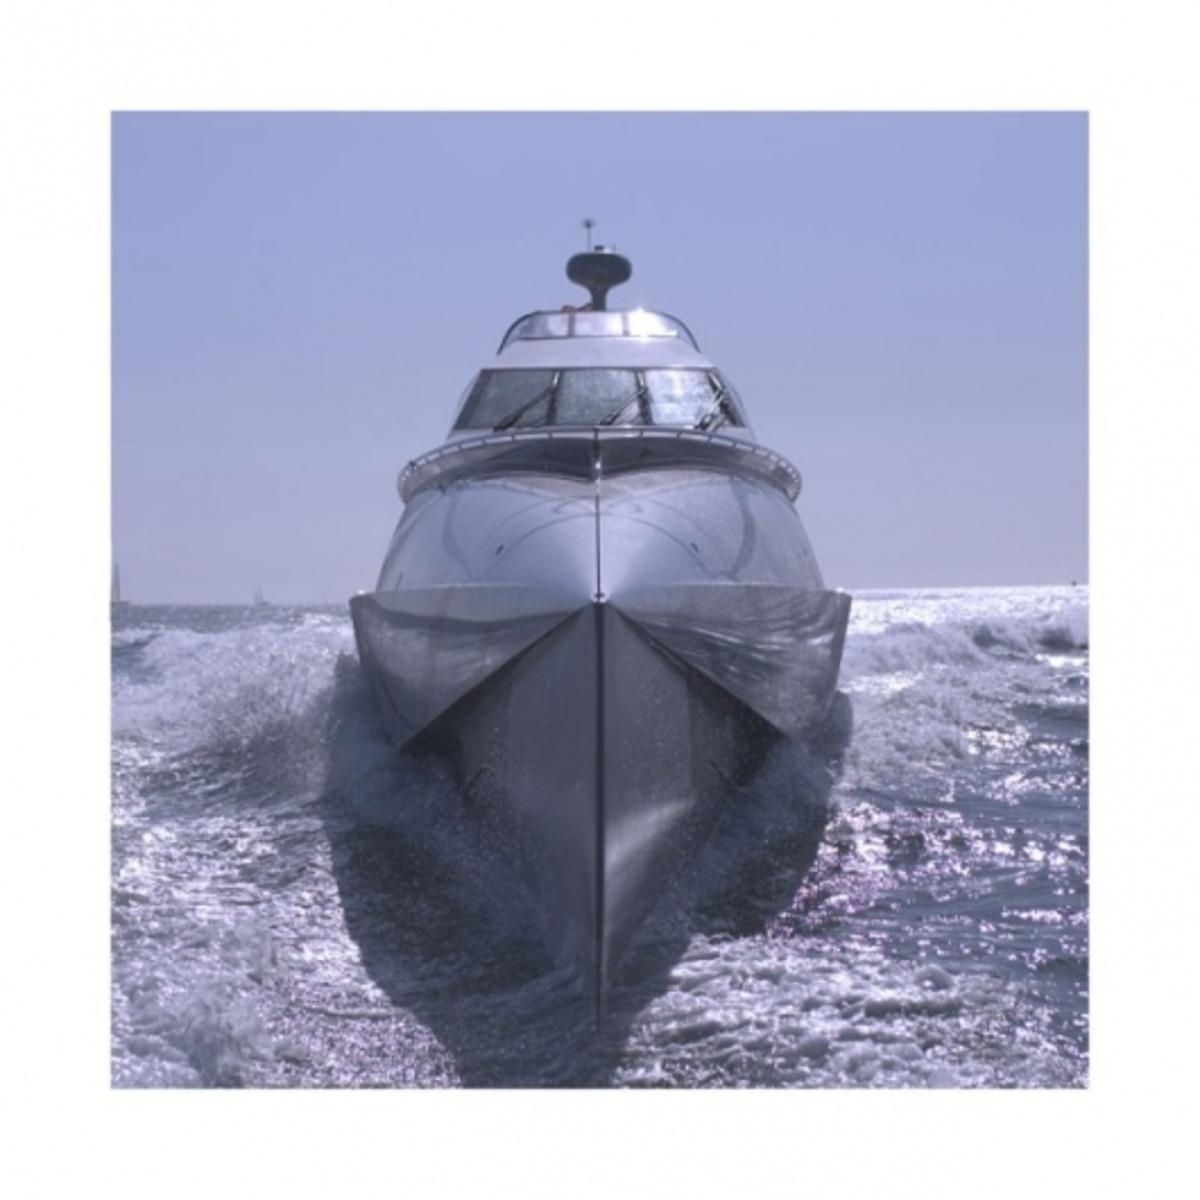 Multimarine Composites' MarySlim© PHOTOGRAPHER: Neils Obee2008 – ALL RIGHTS RESERVED